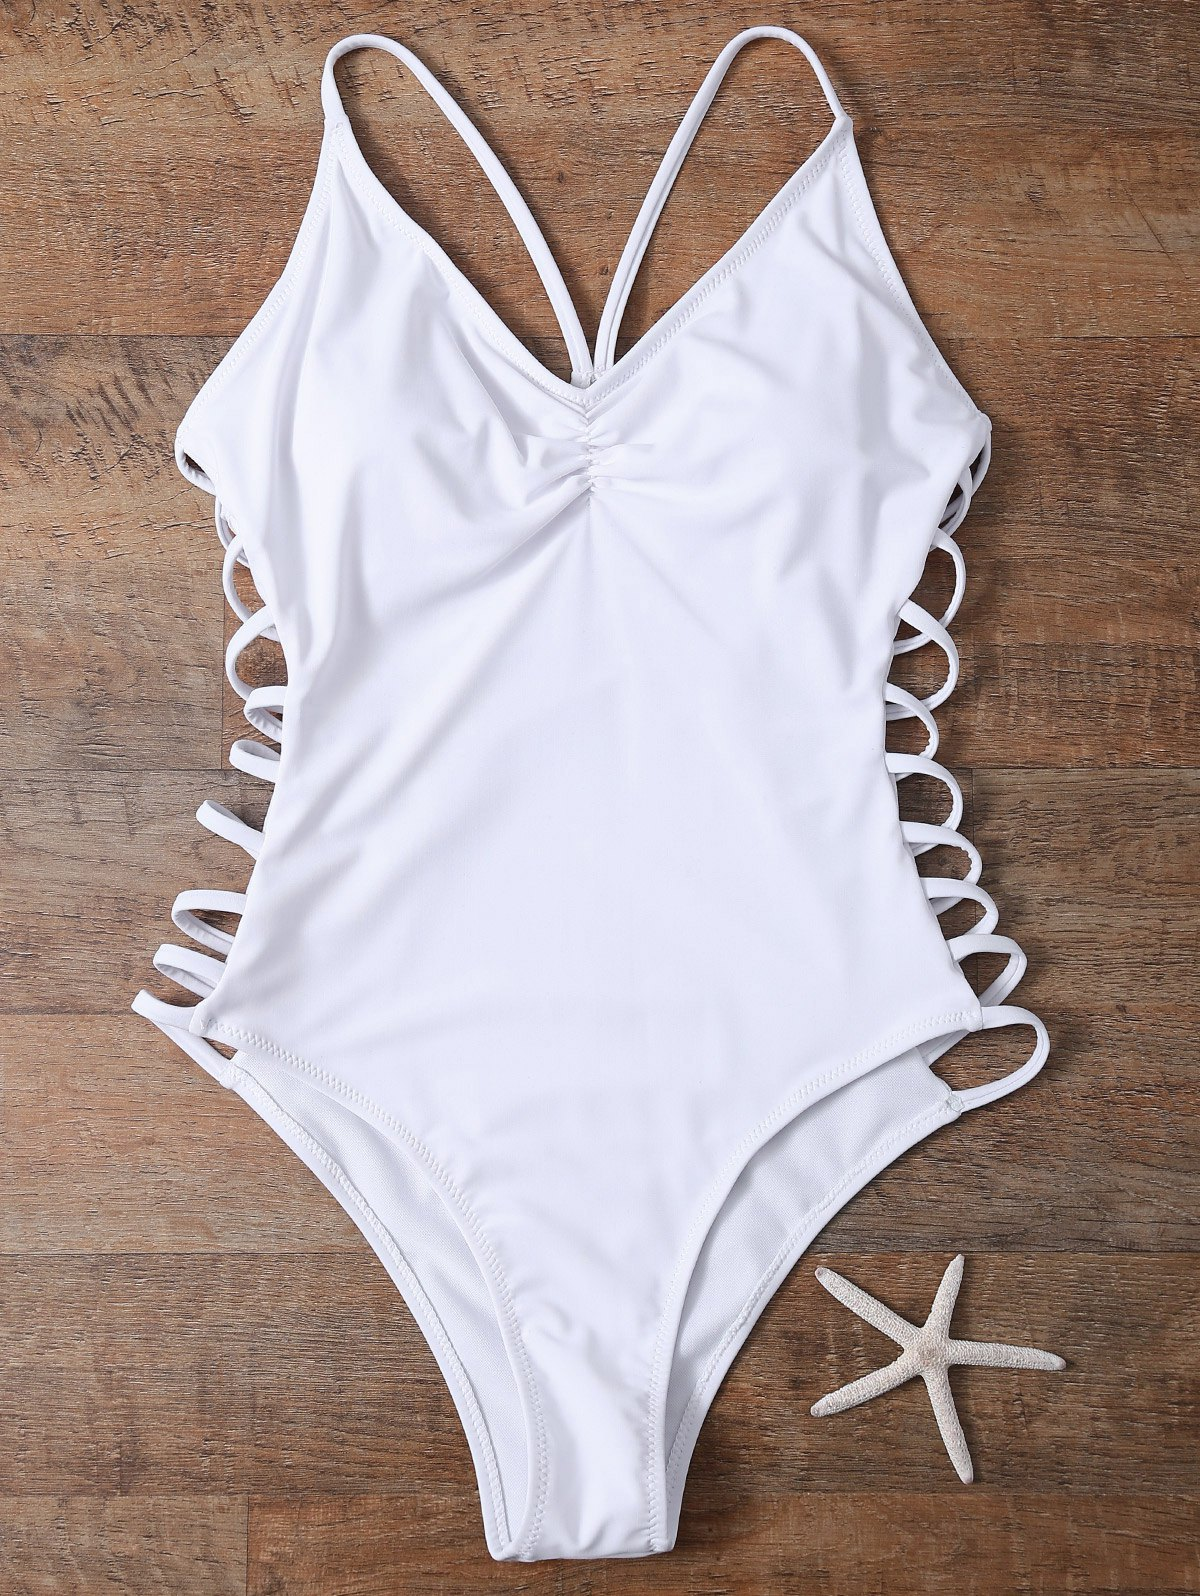 Cutout High Cut One-Piece Swimwear - White S